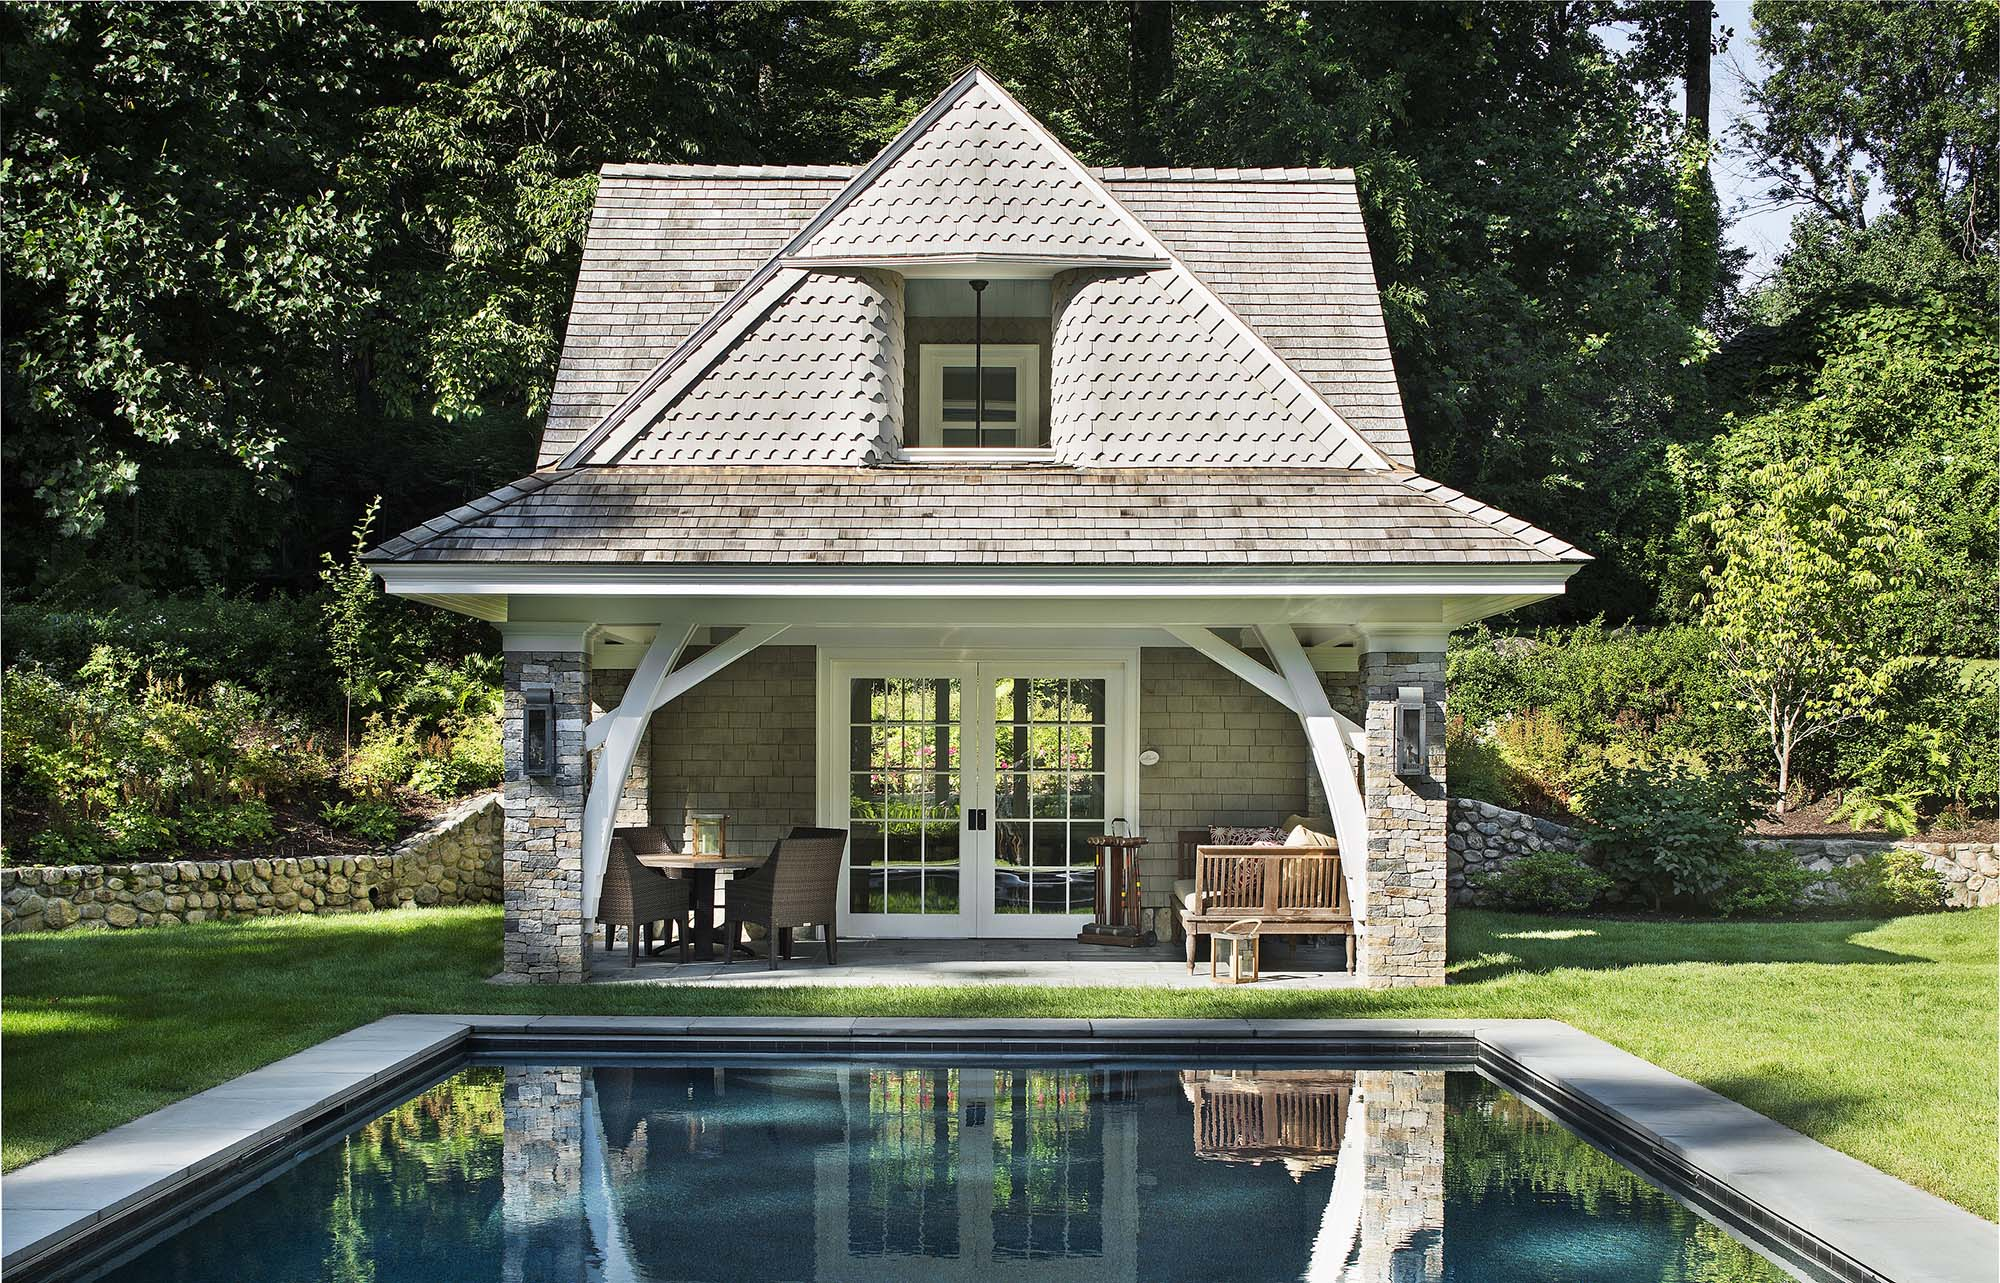 best pool house designs country pool house style - Gambrick